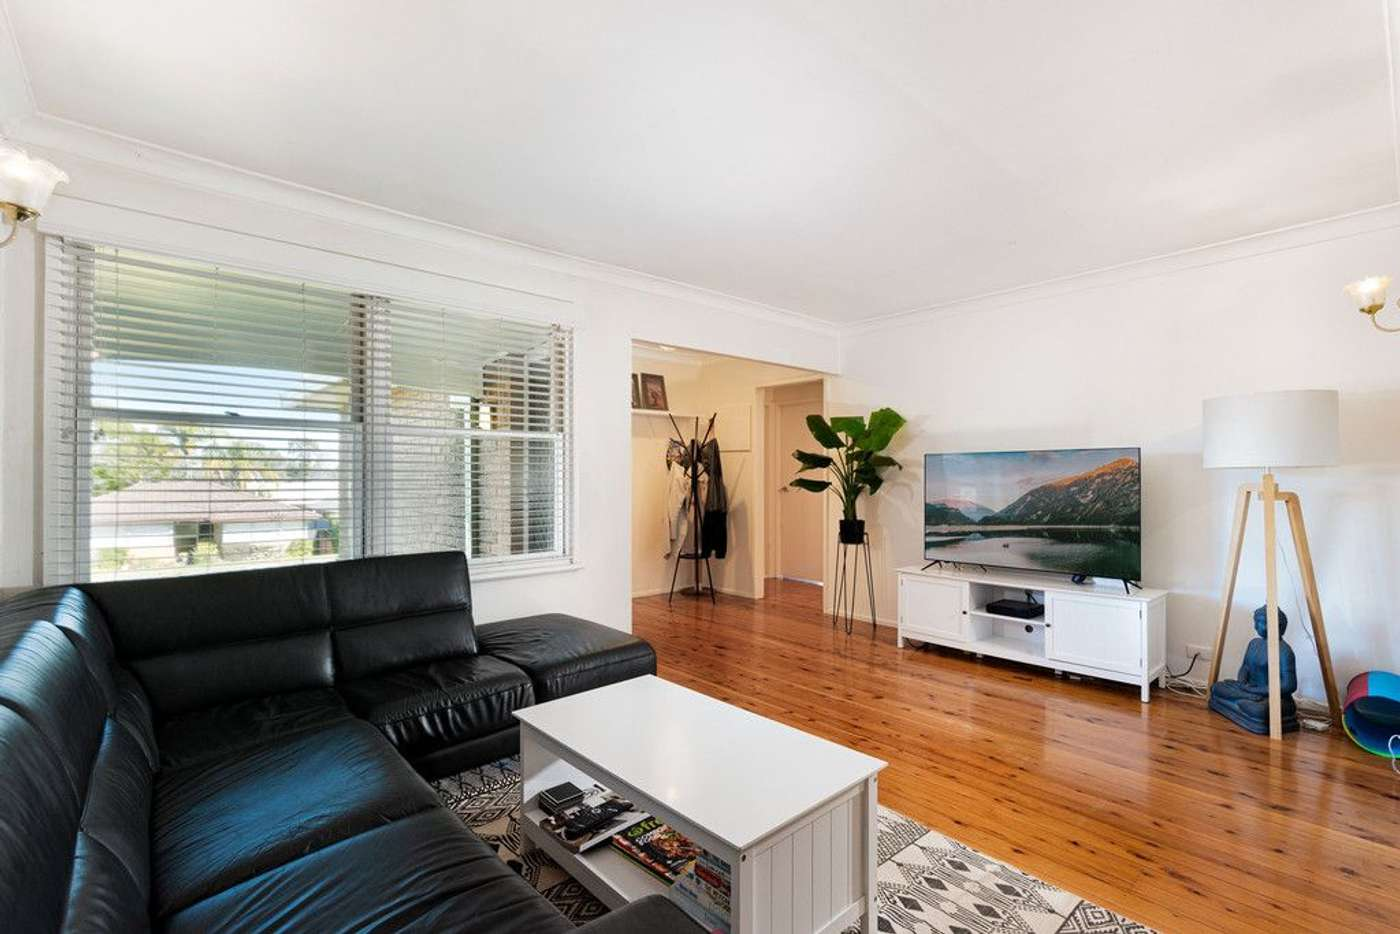 Fifth view of Homely house listing, 36 Gideon Street, Winston Hills NSW 2153